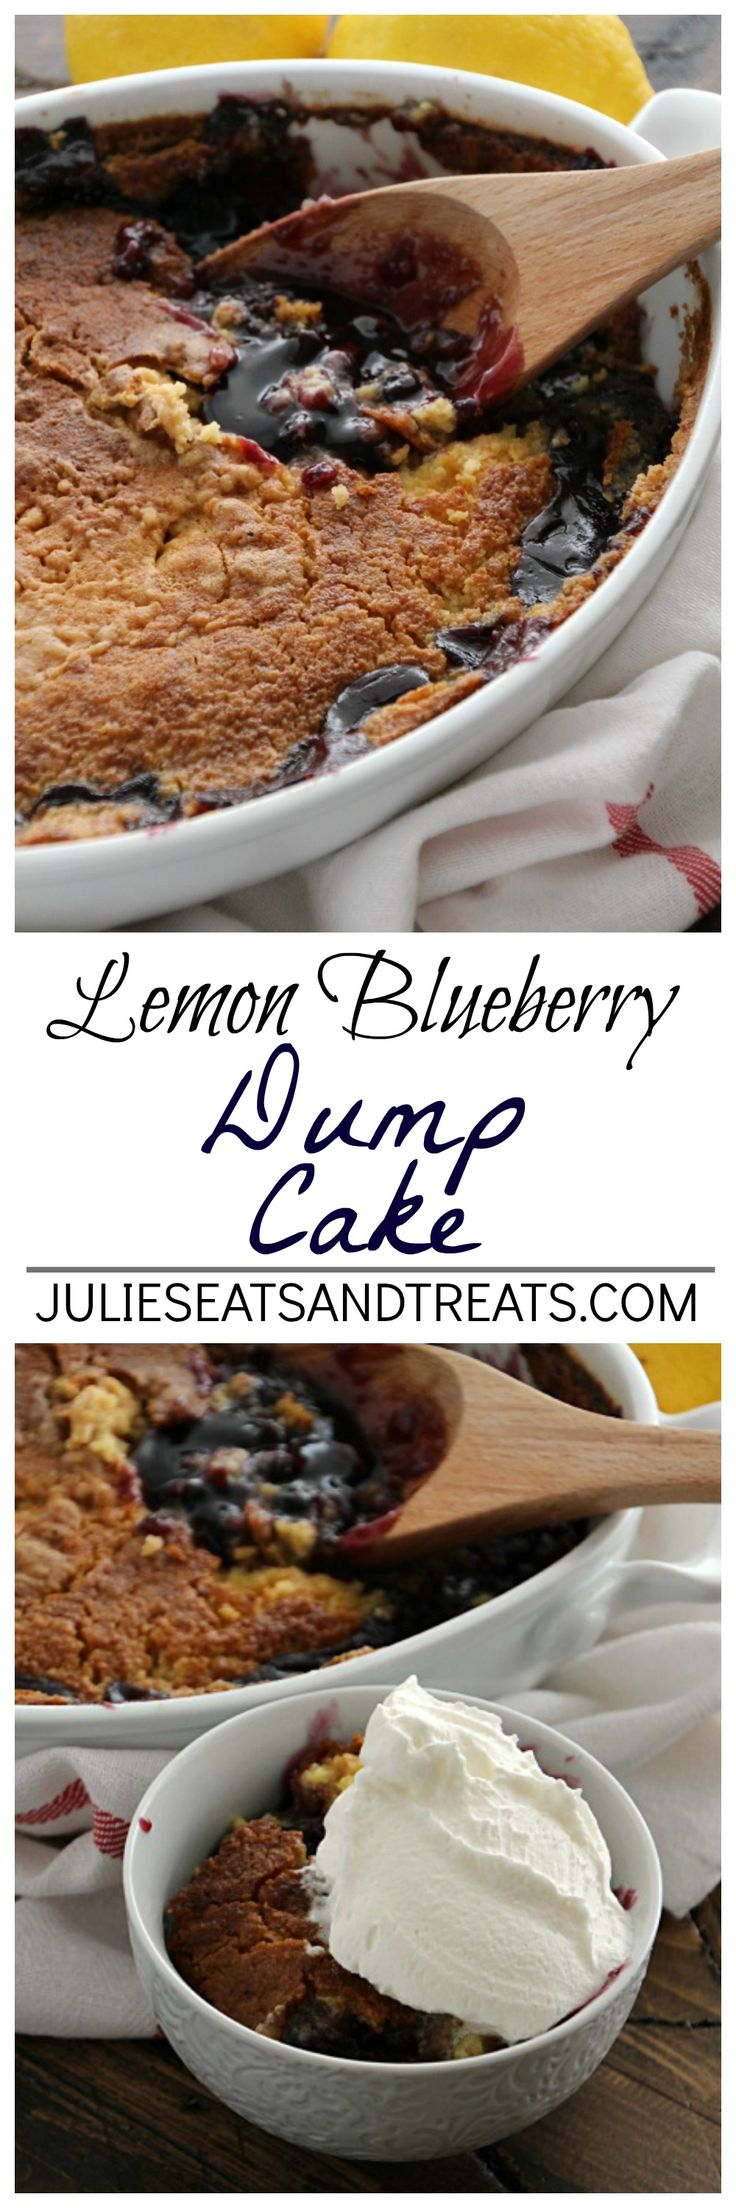 Lemon Blueberry Dump Cake ~ Quick & Easy Dessert Loaded with Blueberry Pie Filling and topped with Lemon Cake! Only Three Ingredients! ~ http://www.julieseatsandtreats.com